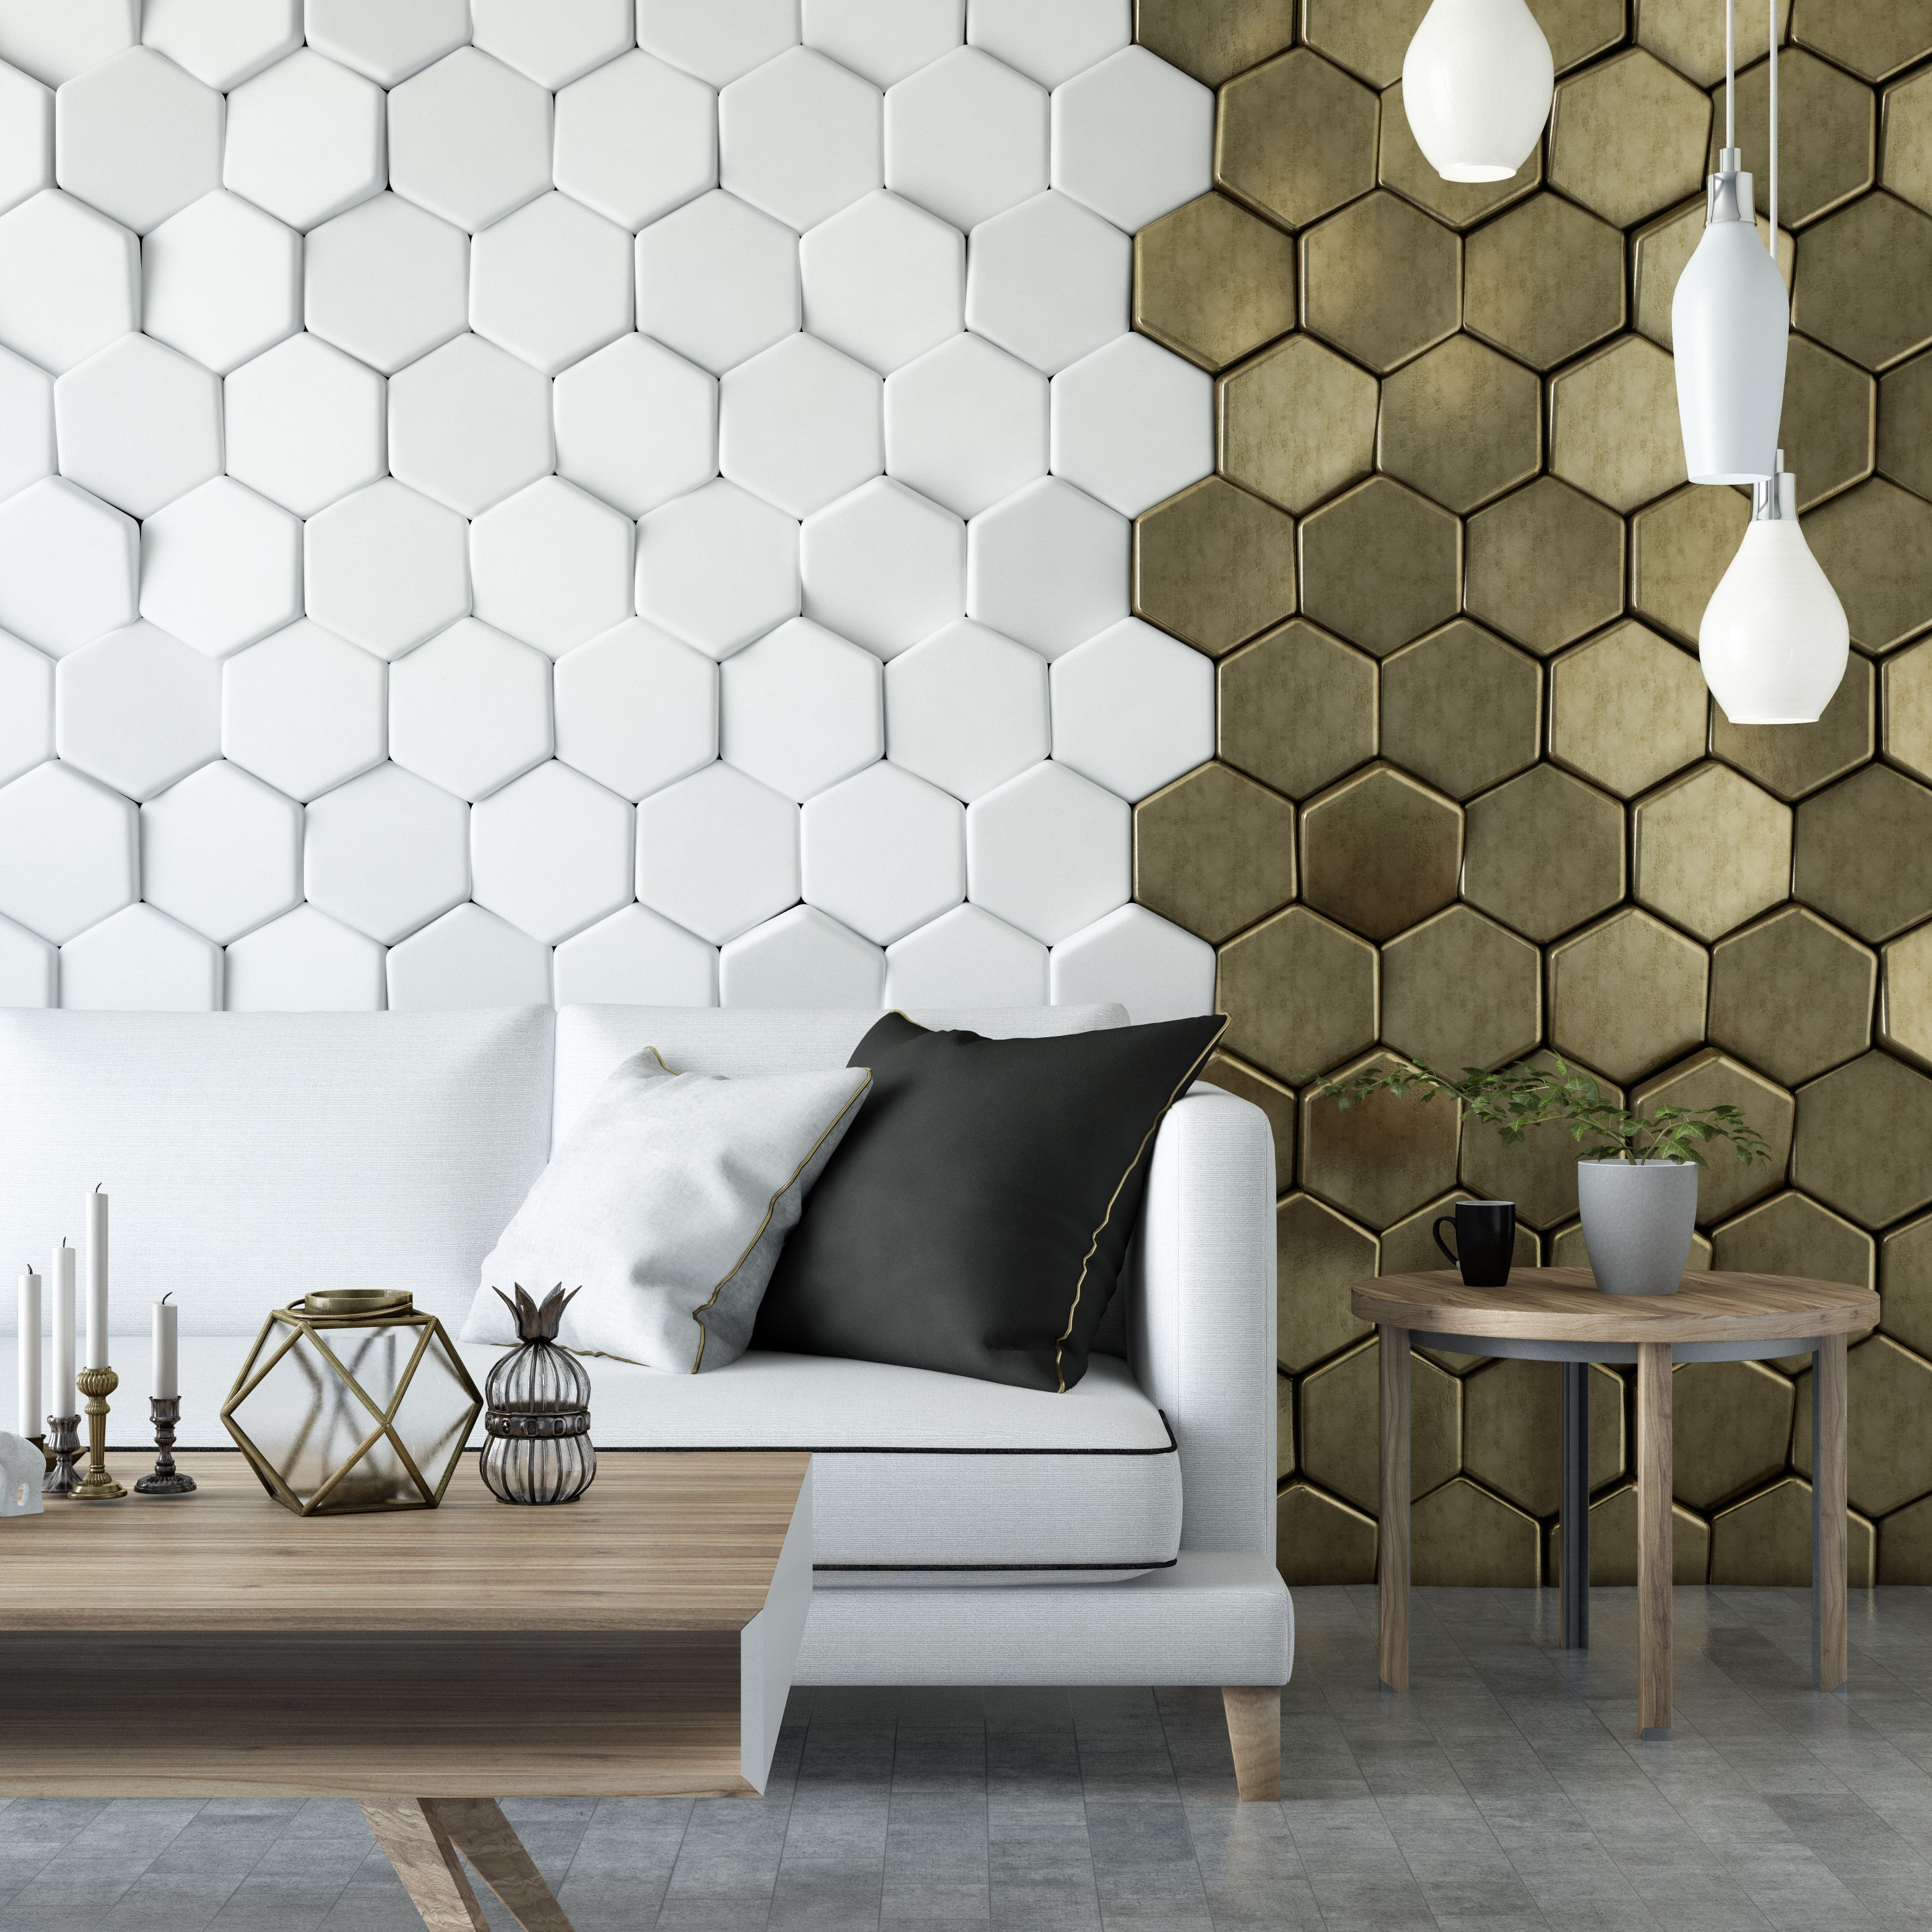 These Pictures Of Textured 3d Wall Panels Will Make You Drool In 2020 Textured Wall Panels 3d Wall Panels 3d Textured Wall Panels